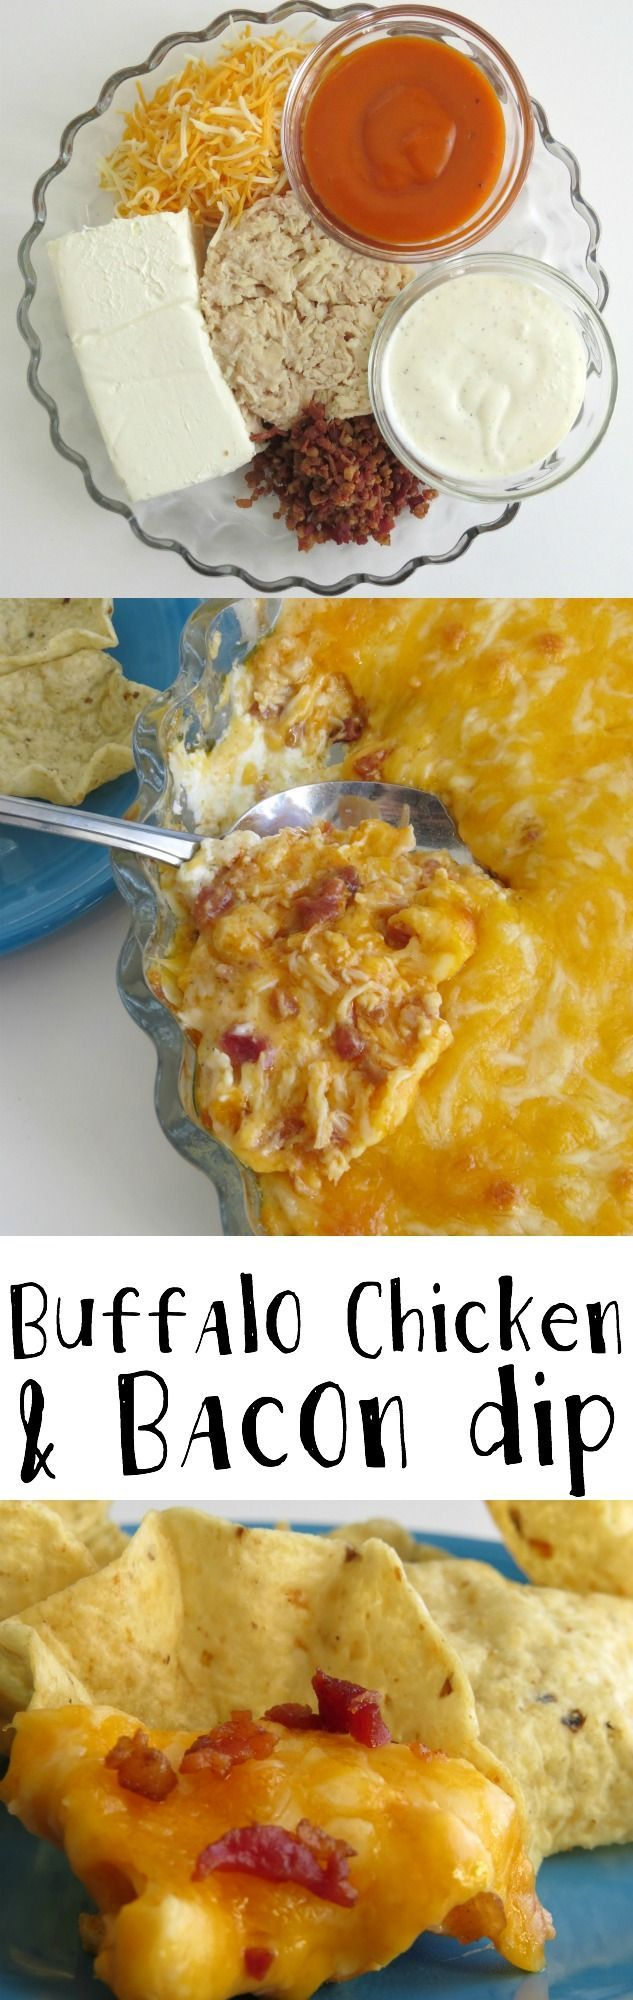 Buffalo Chicken & Bacon Dip recipe great Game Day party food favorite- it's a super easy recipes, too!